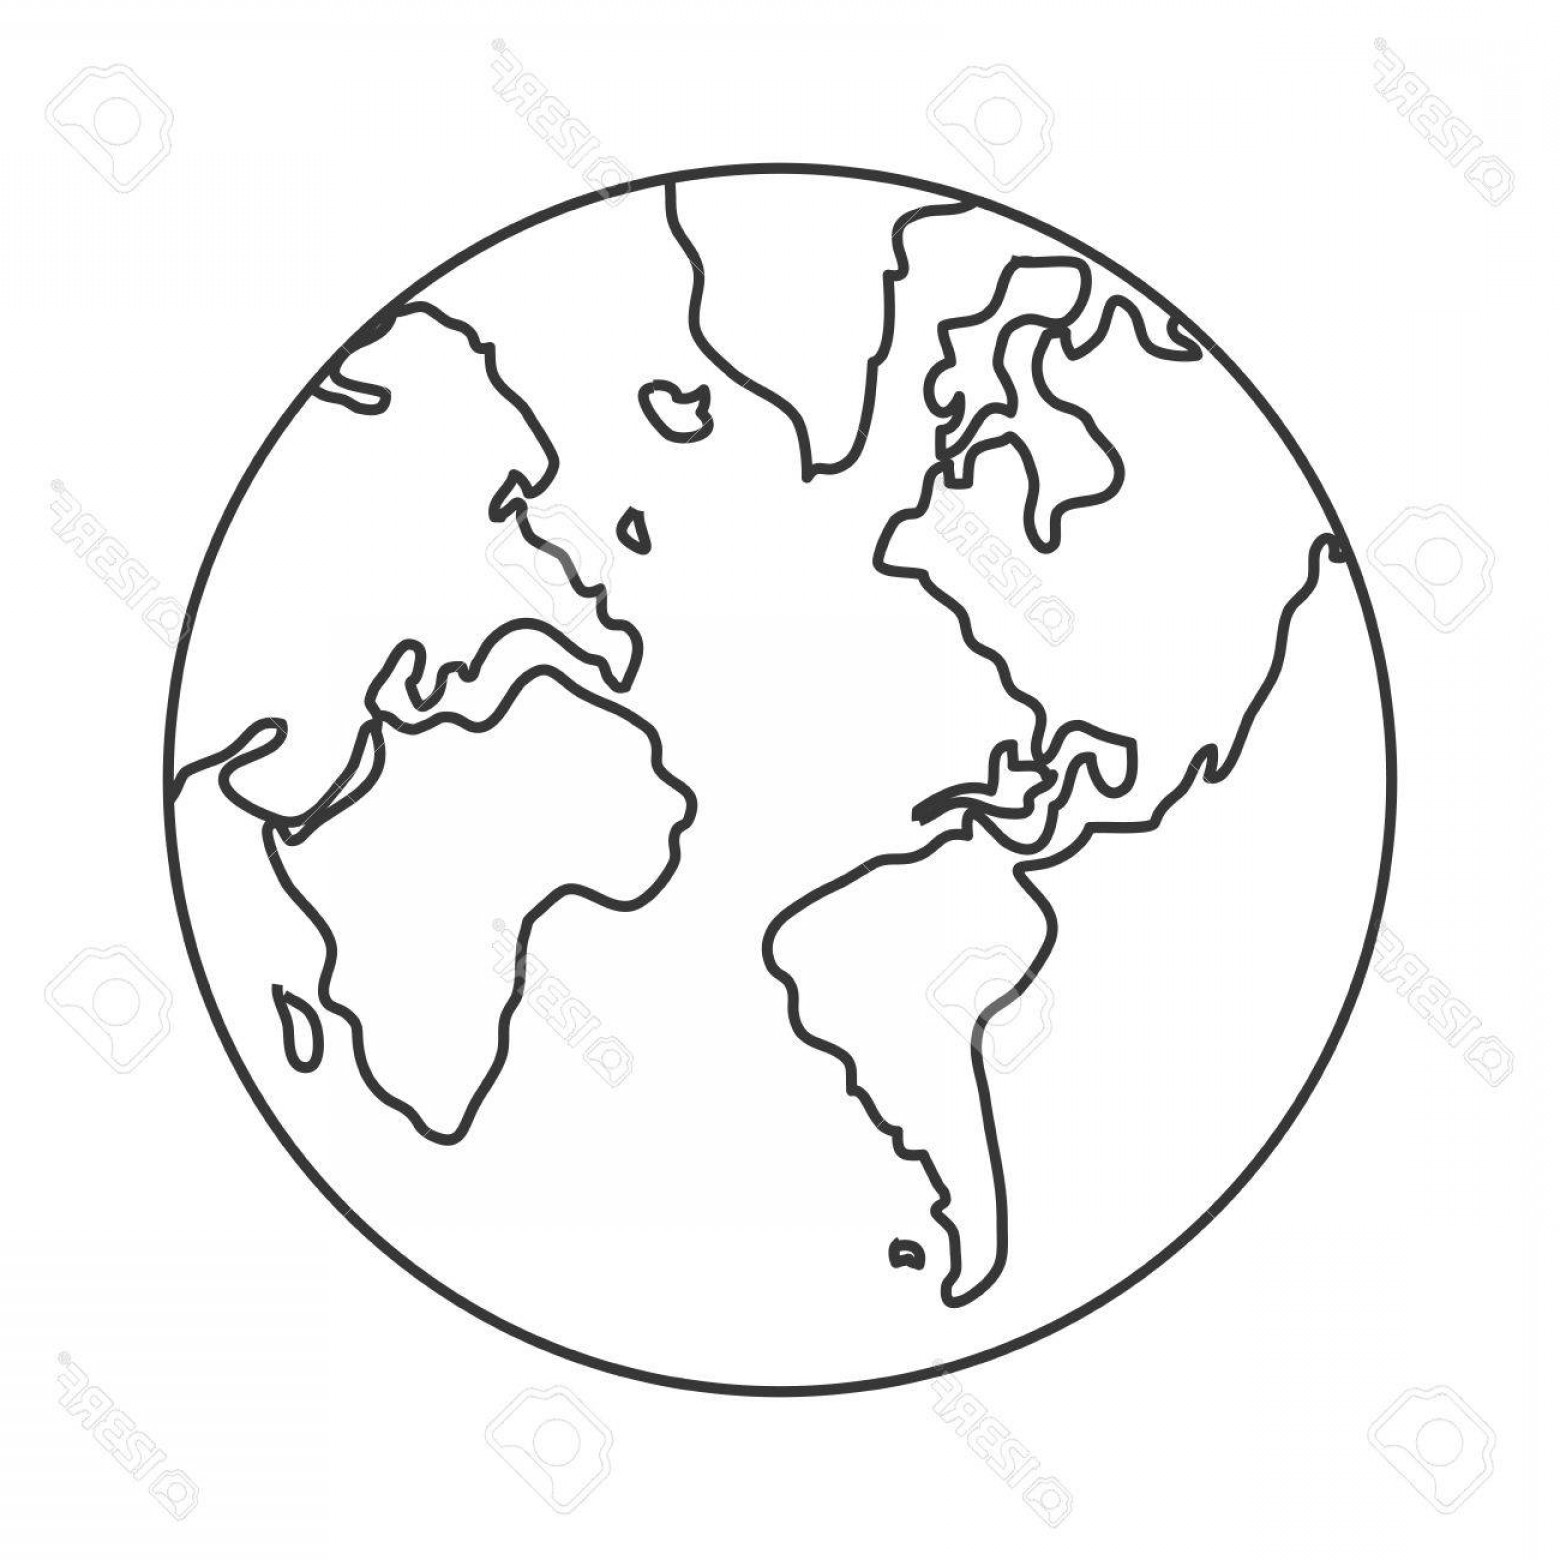 World Icon Vector Simple: Photostock Vector Simple Line Design Earth Globe With Distinction Between Water And Land Icon Vector Illustration